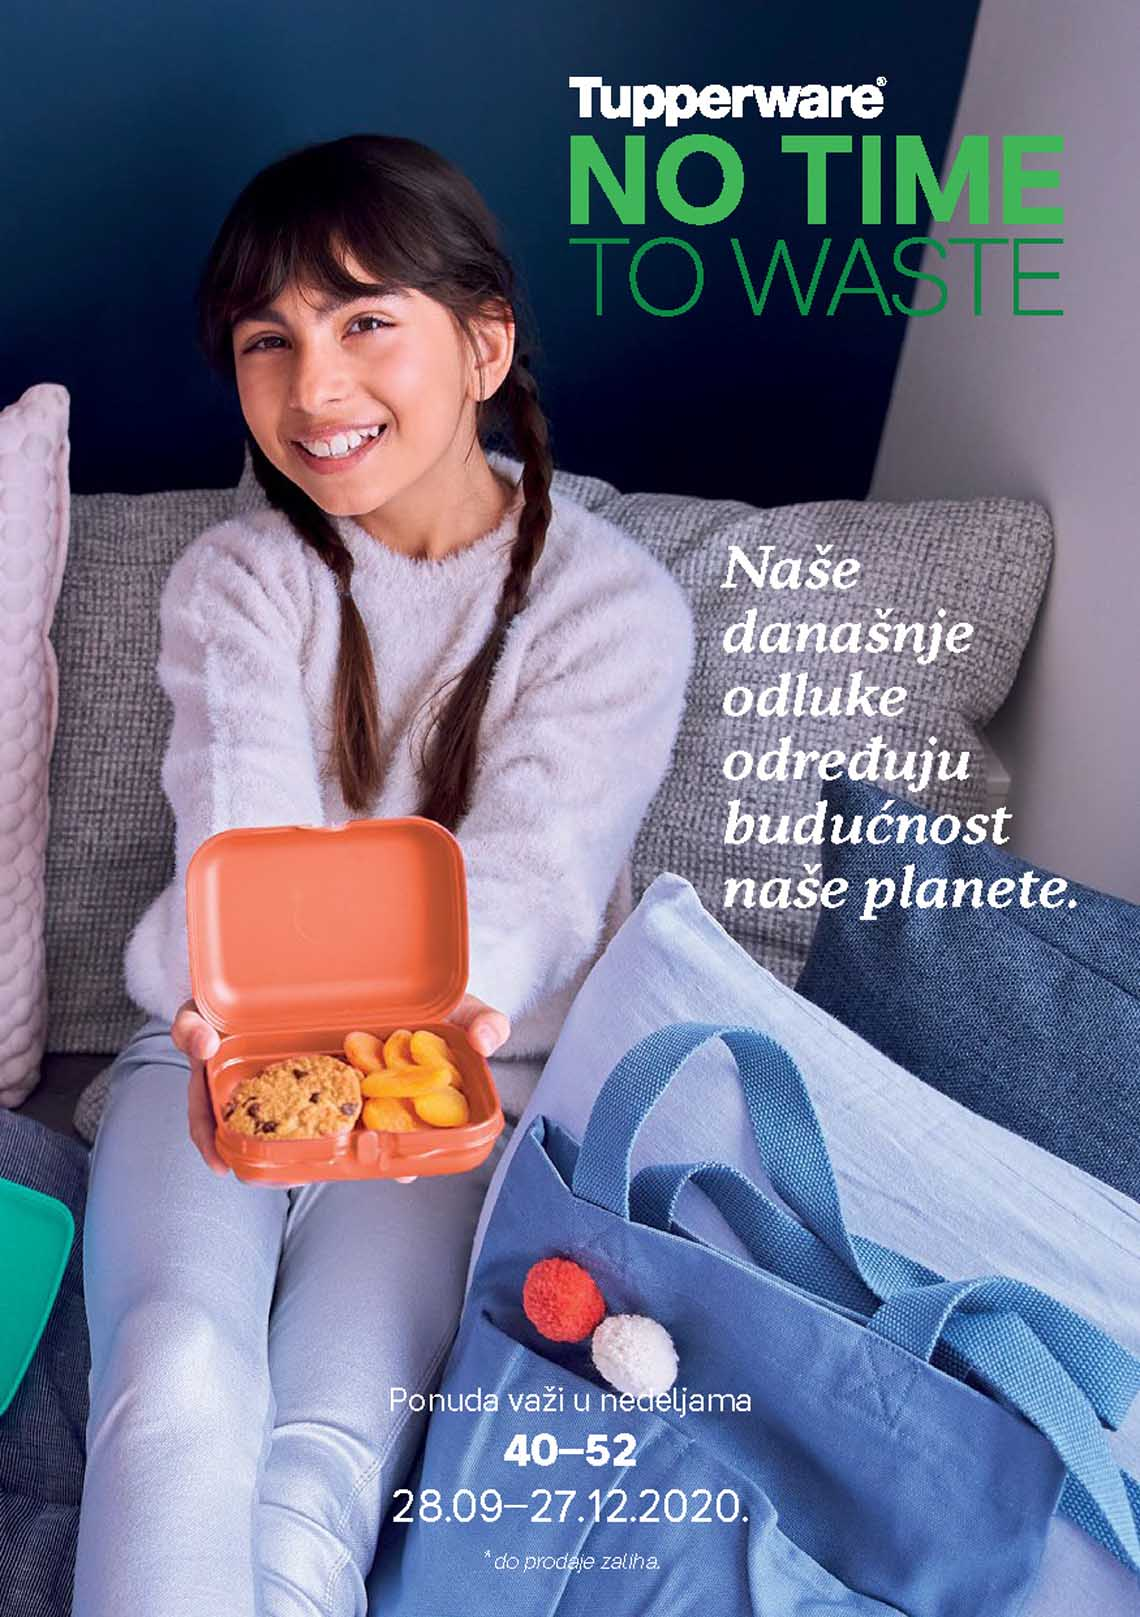 TUPPERWARE Katalog -  NO TIME TO WASTE - AKCIJA SNIŽENJA DO 27.12.2020.